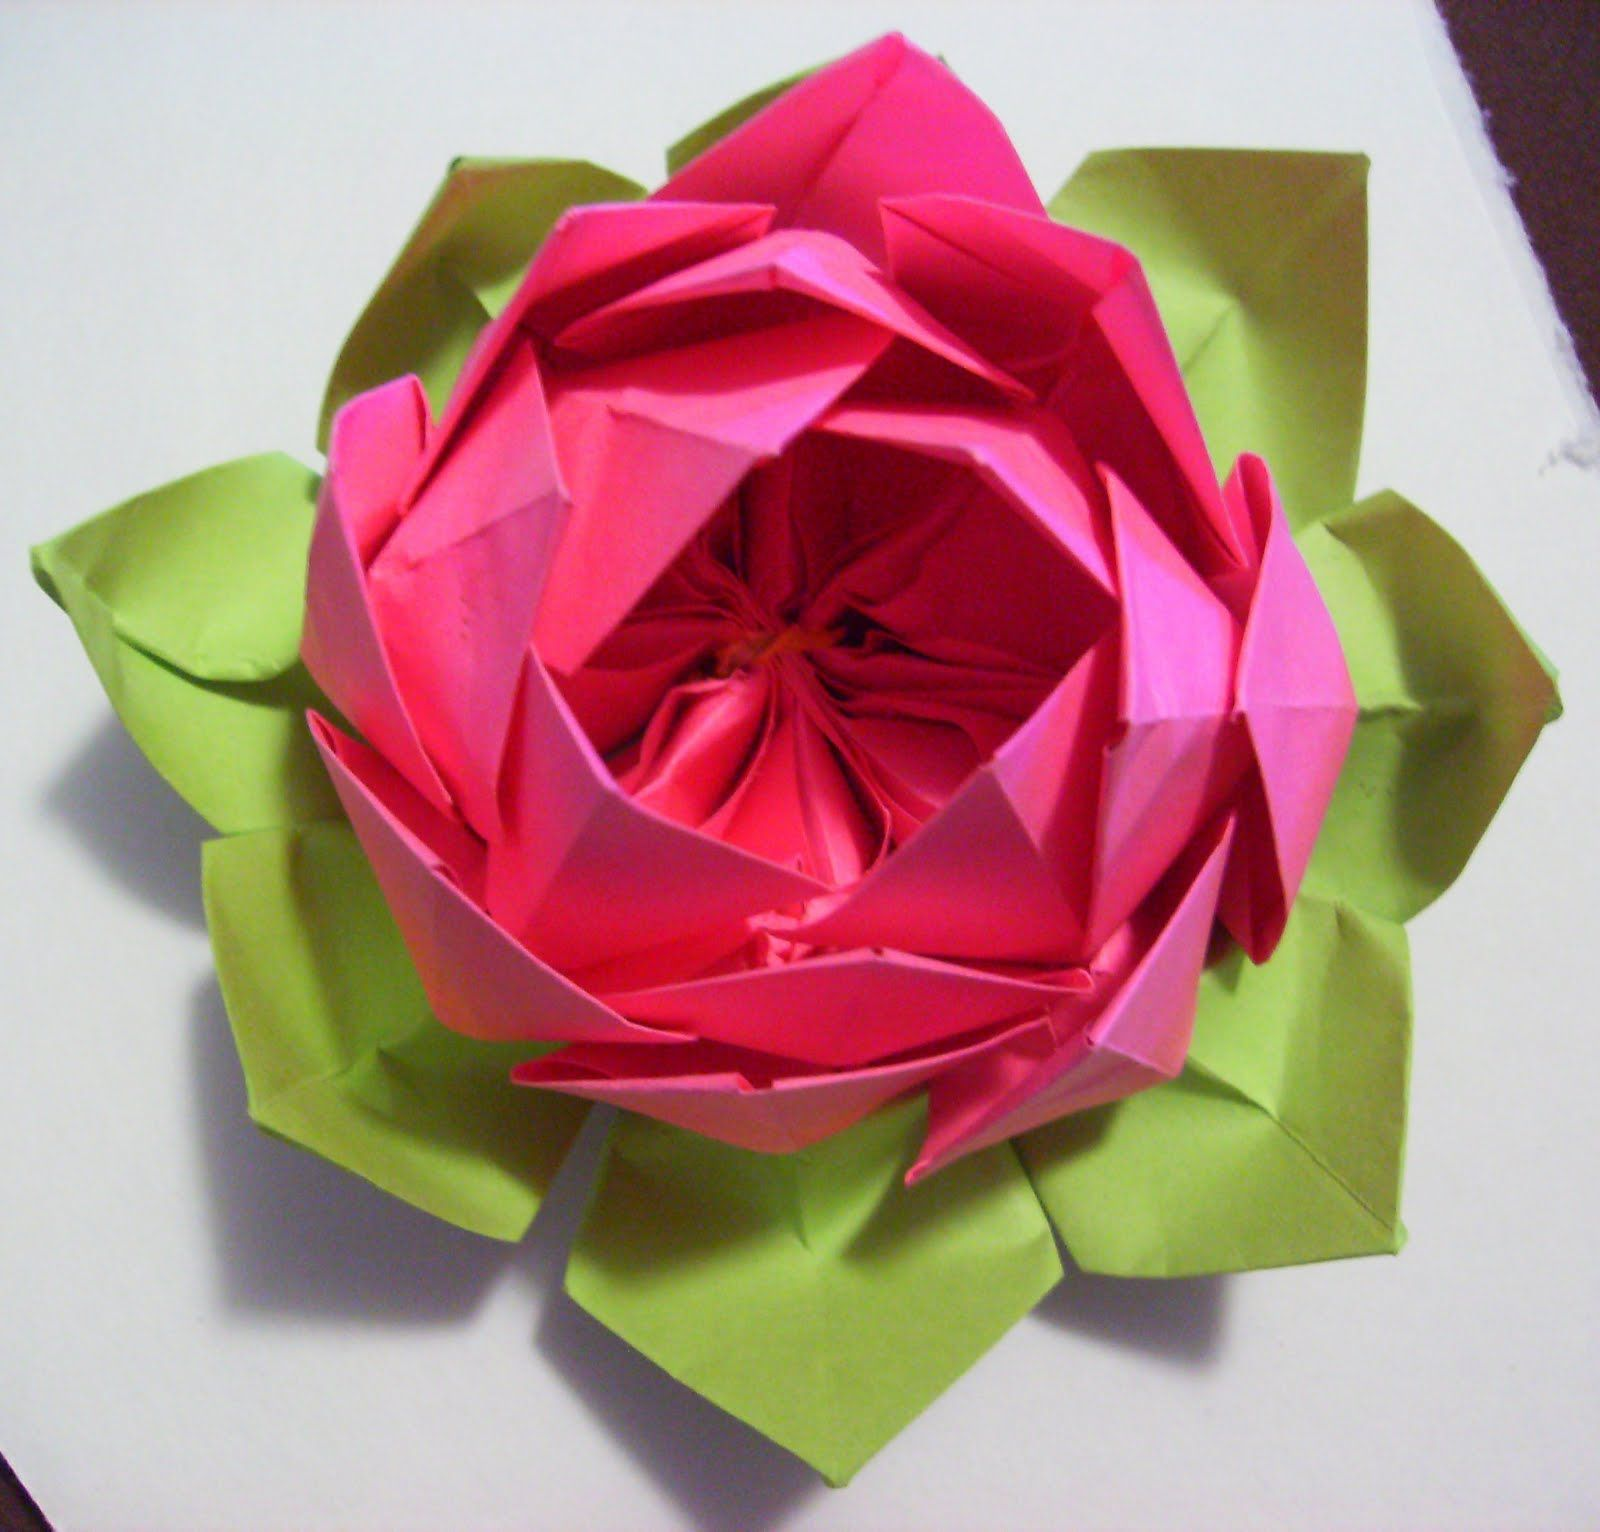 Origami Lotus Flower origami lotus flower instructions pdf ... - photo#38